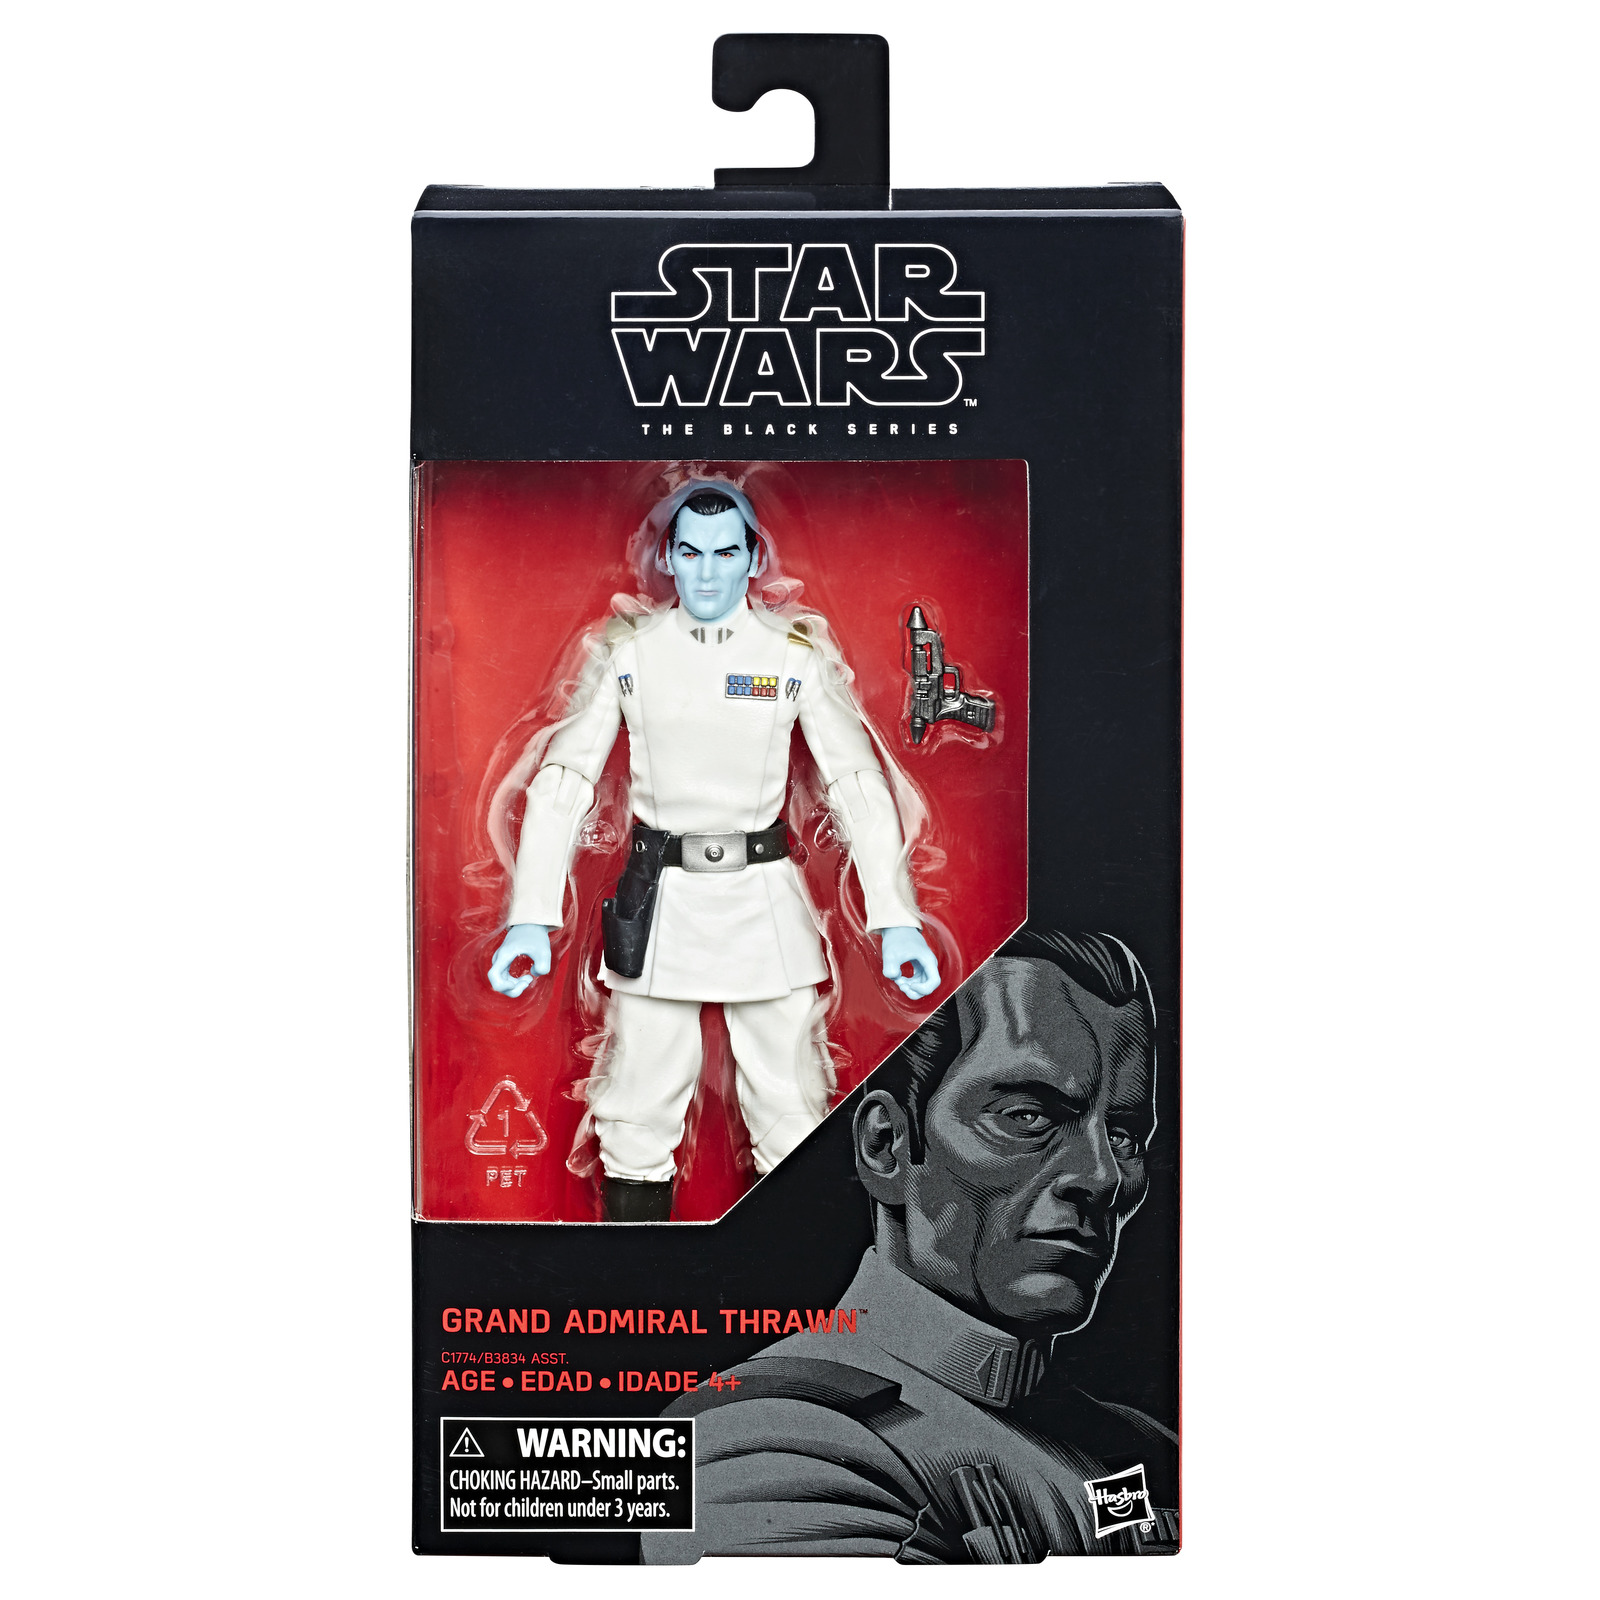 Star Wars: The Black Series - Grand Admiral Thrawn image